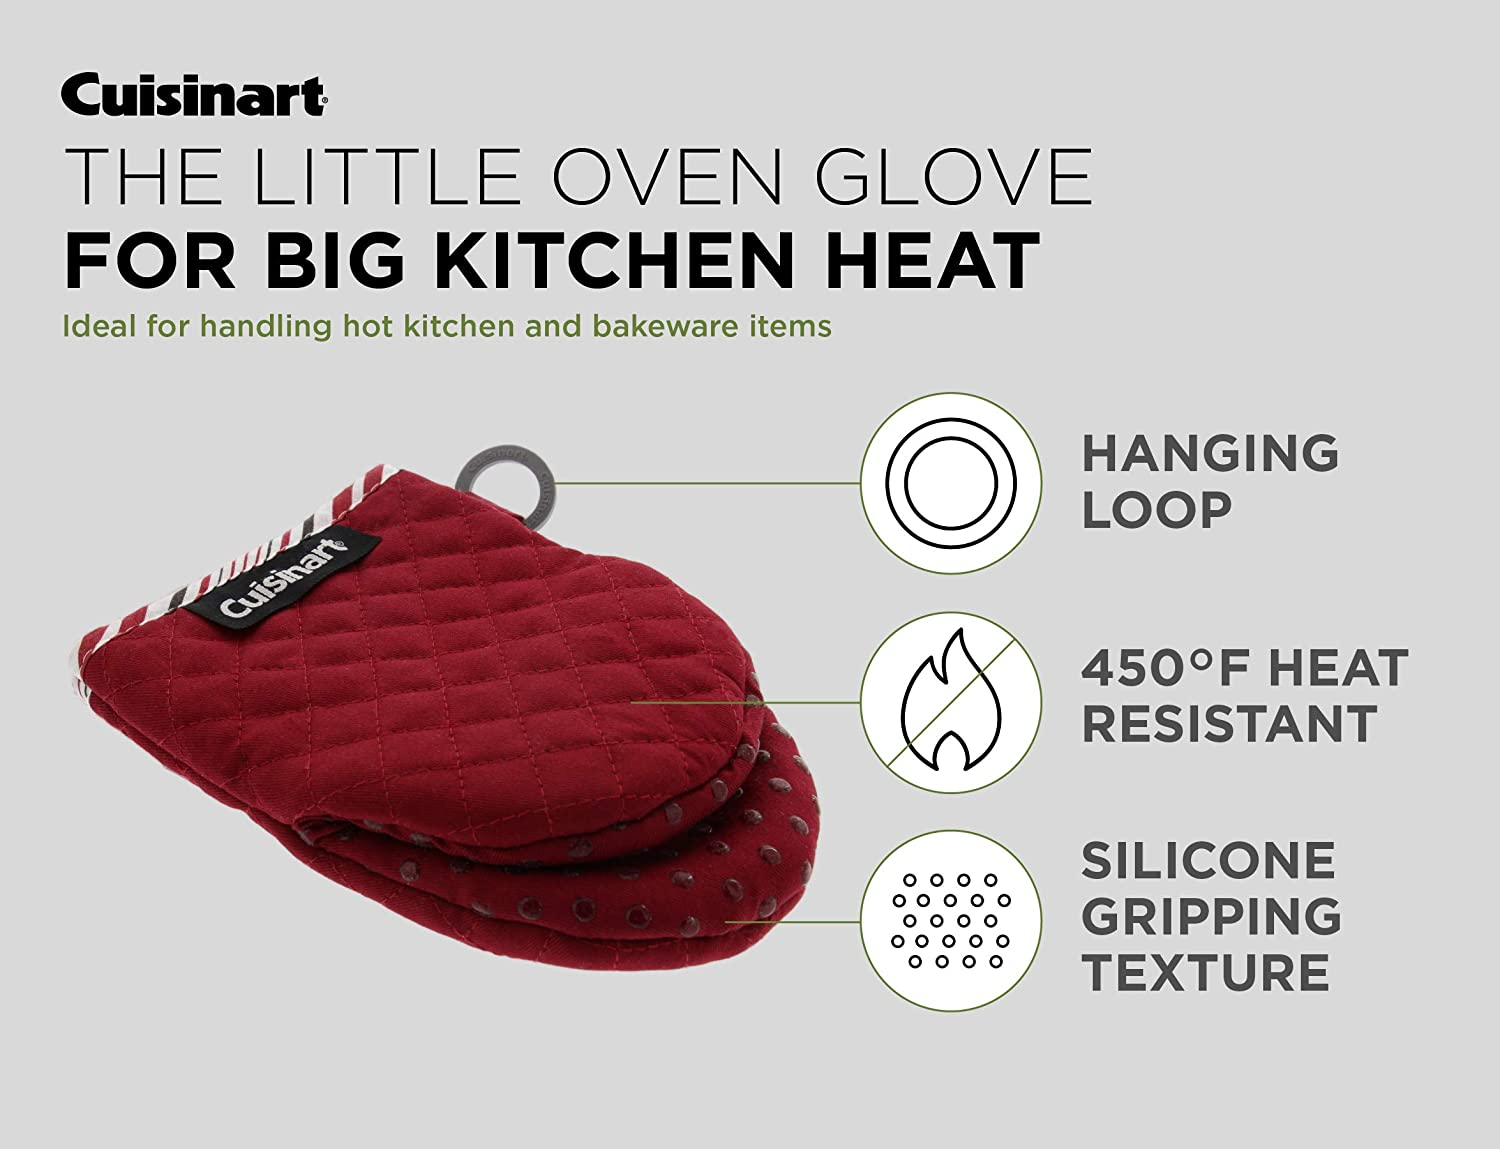 Hanging Loop Jet Black 2 Pack Heat Resistant 7 x 5 Inches Cuisinart Silicone Mini Oven Mitts Non-Slip Grip Little Oven Gloves for Cooking Ideal for Handling Hot Kitchen//Bakeware Items